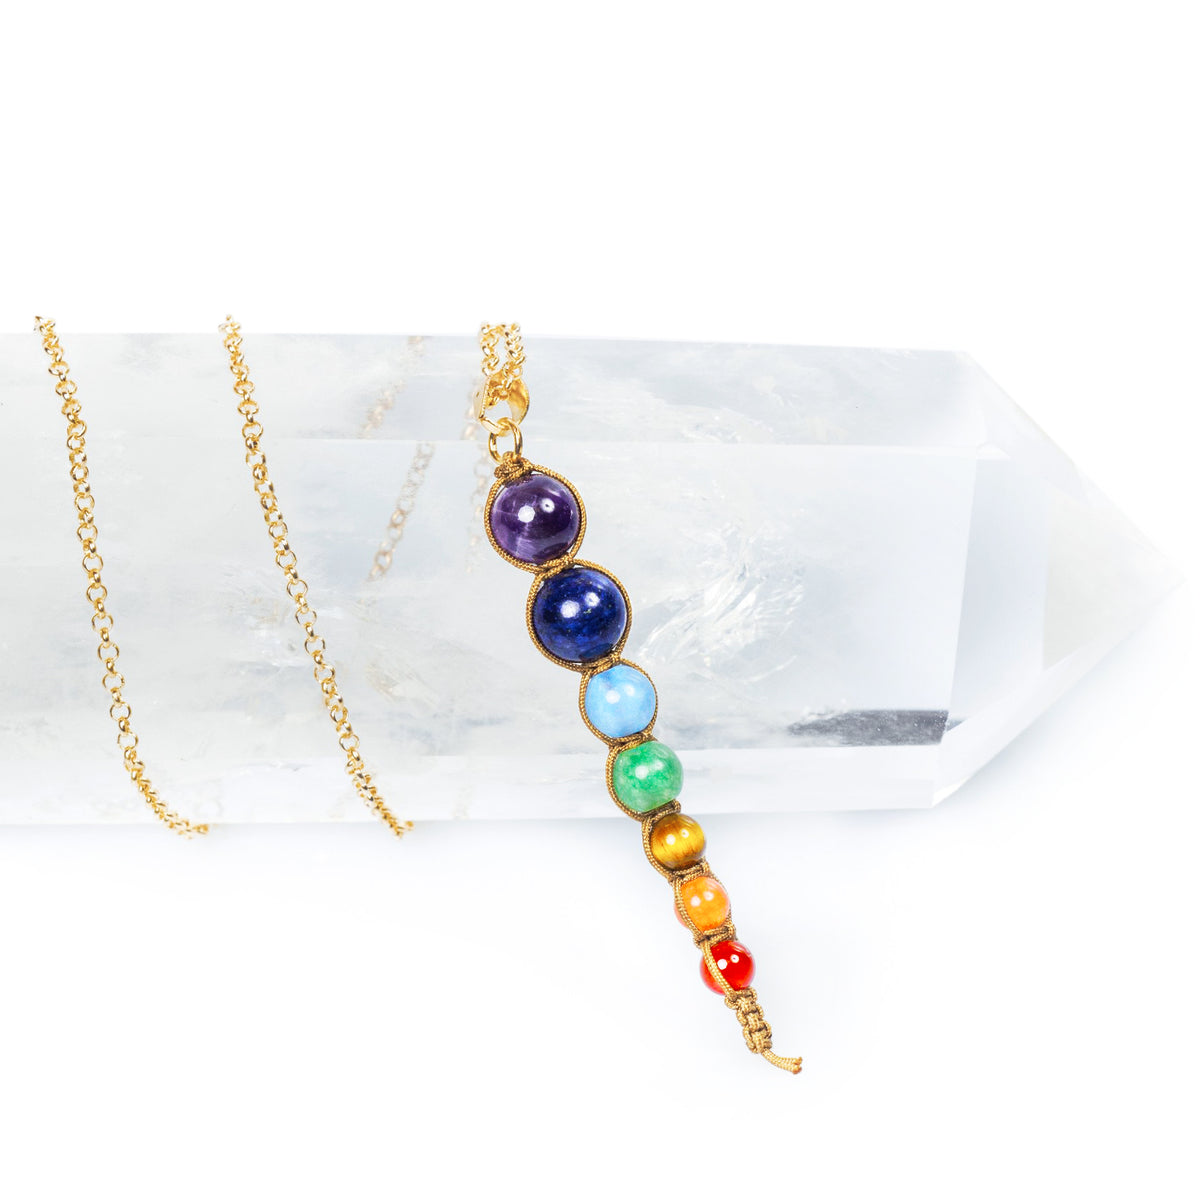 7-Bead Pendant Staggered Chakra Healing Necklace